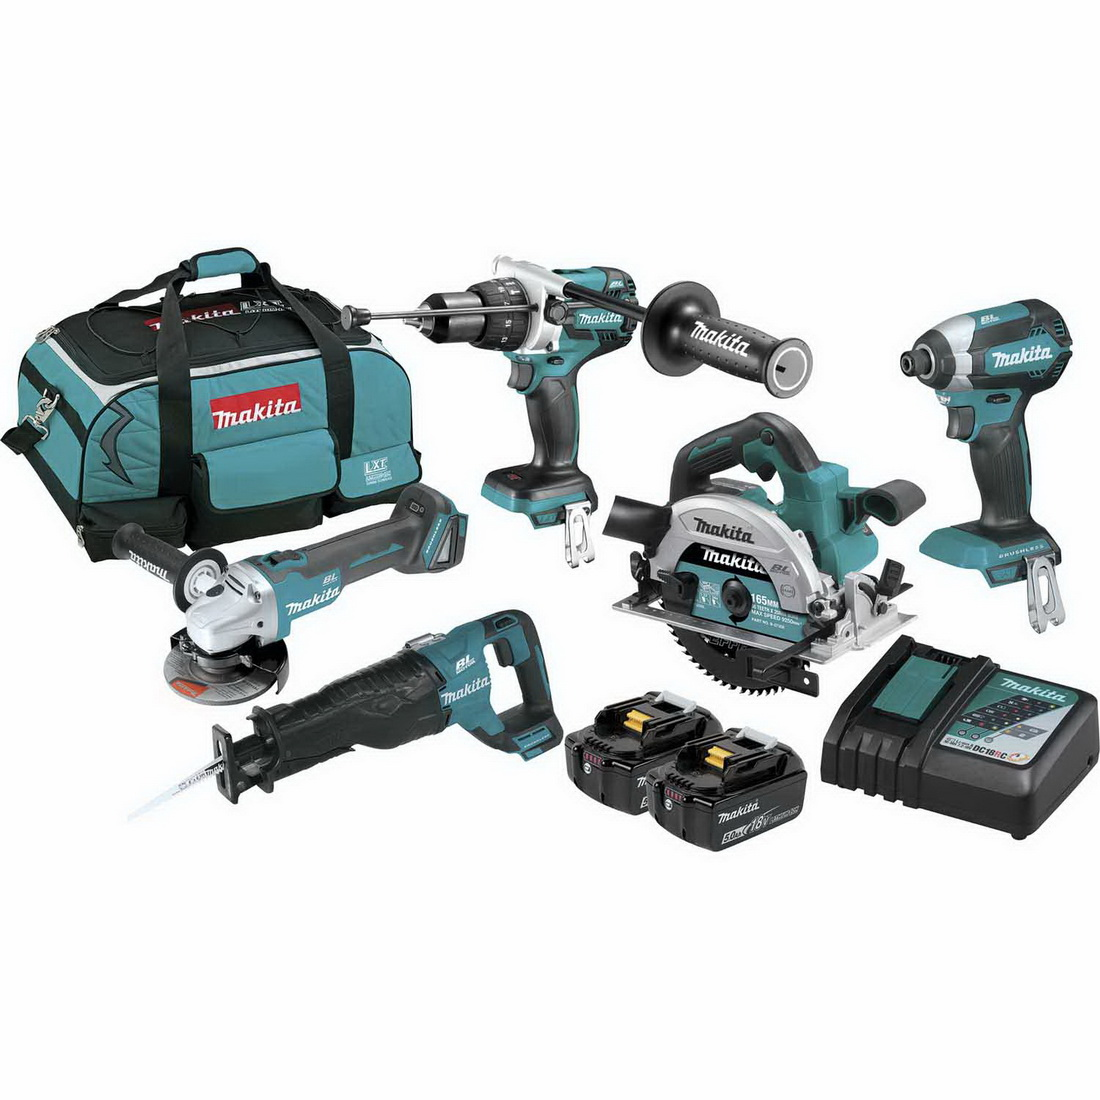 5-Piece 18V Lithium-Ion Cordless Brushless Combo Kit